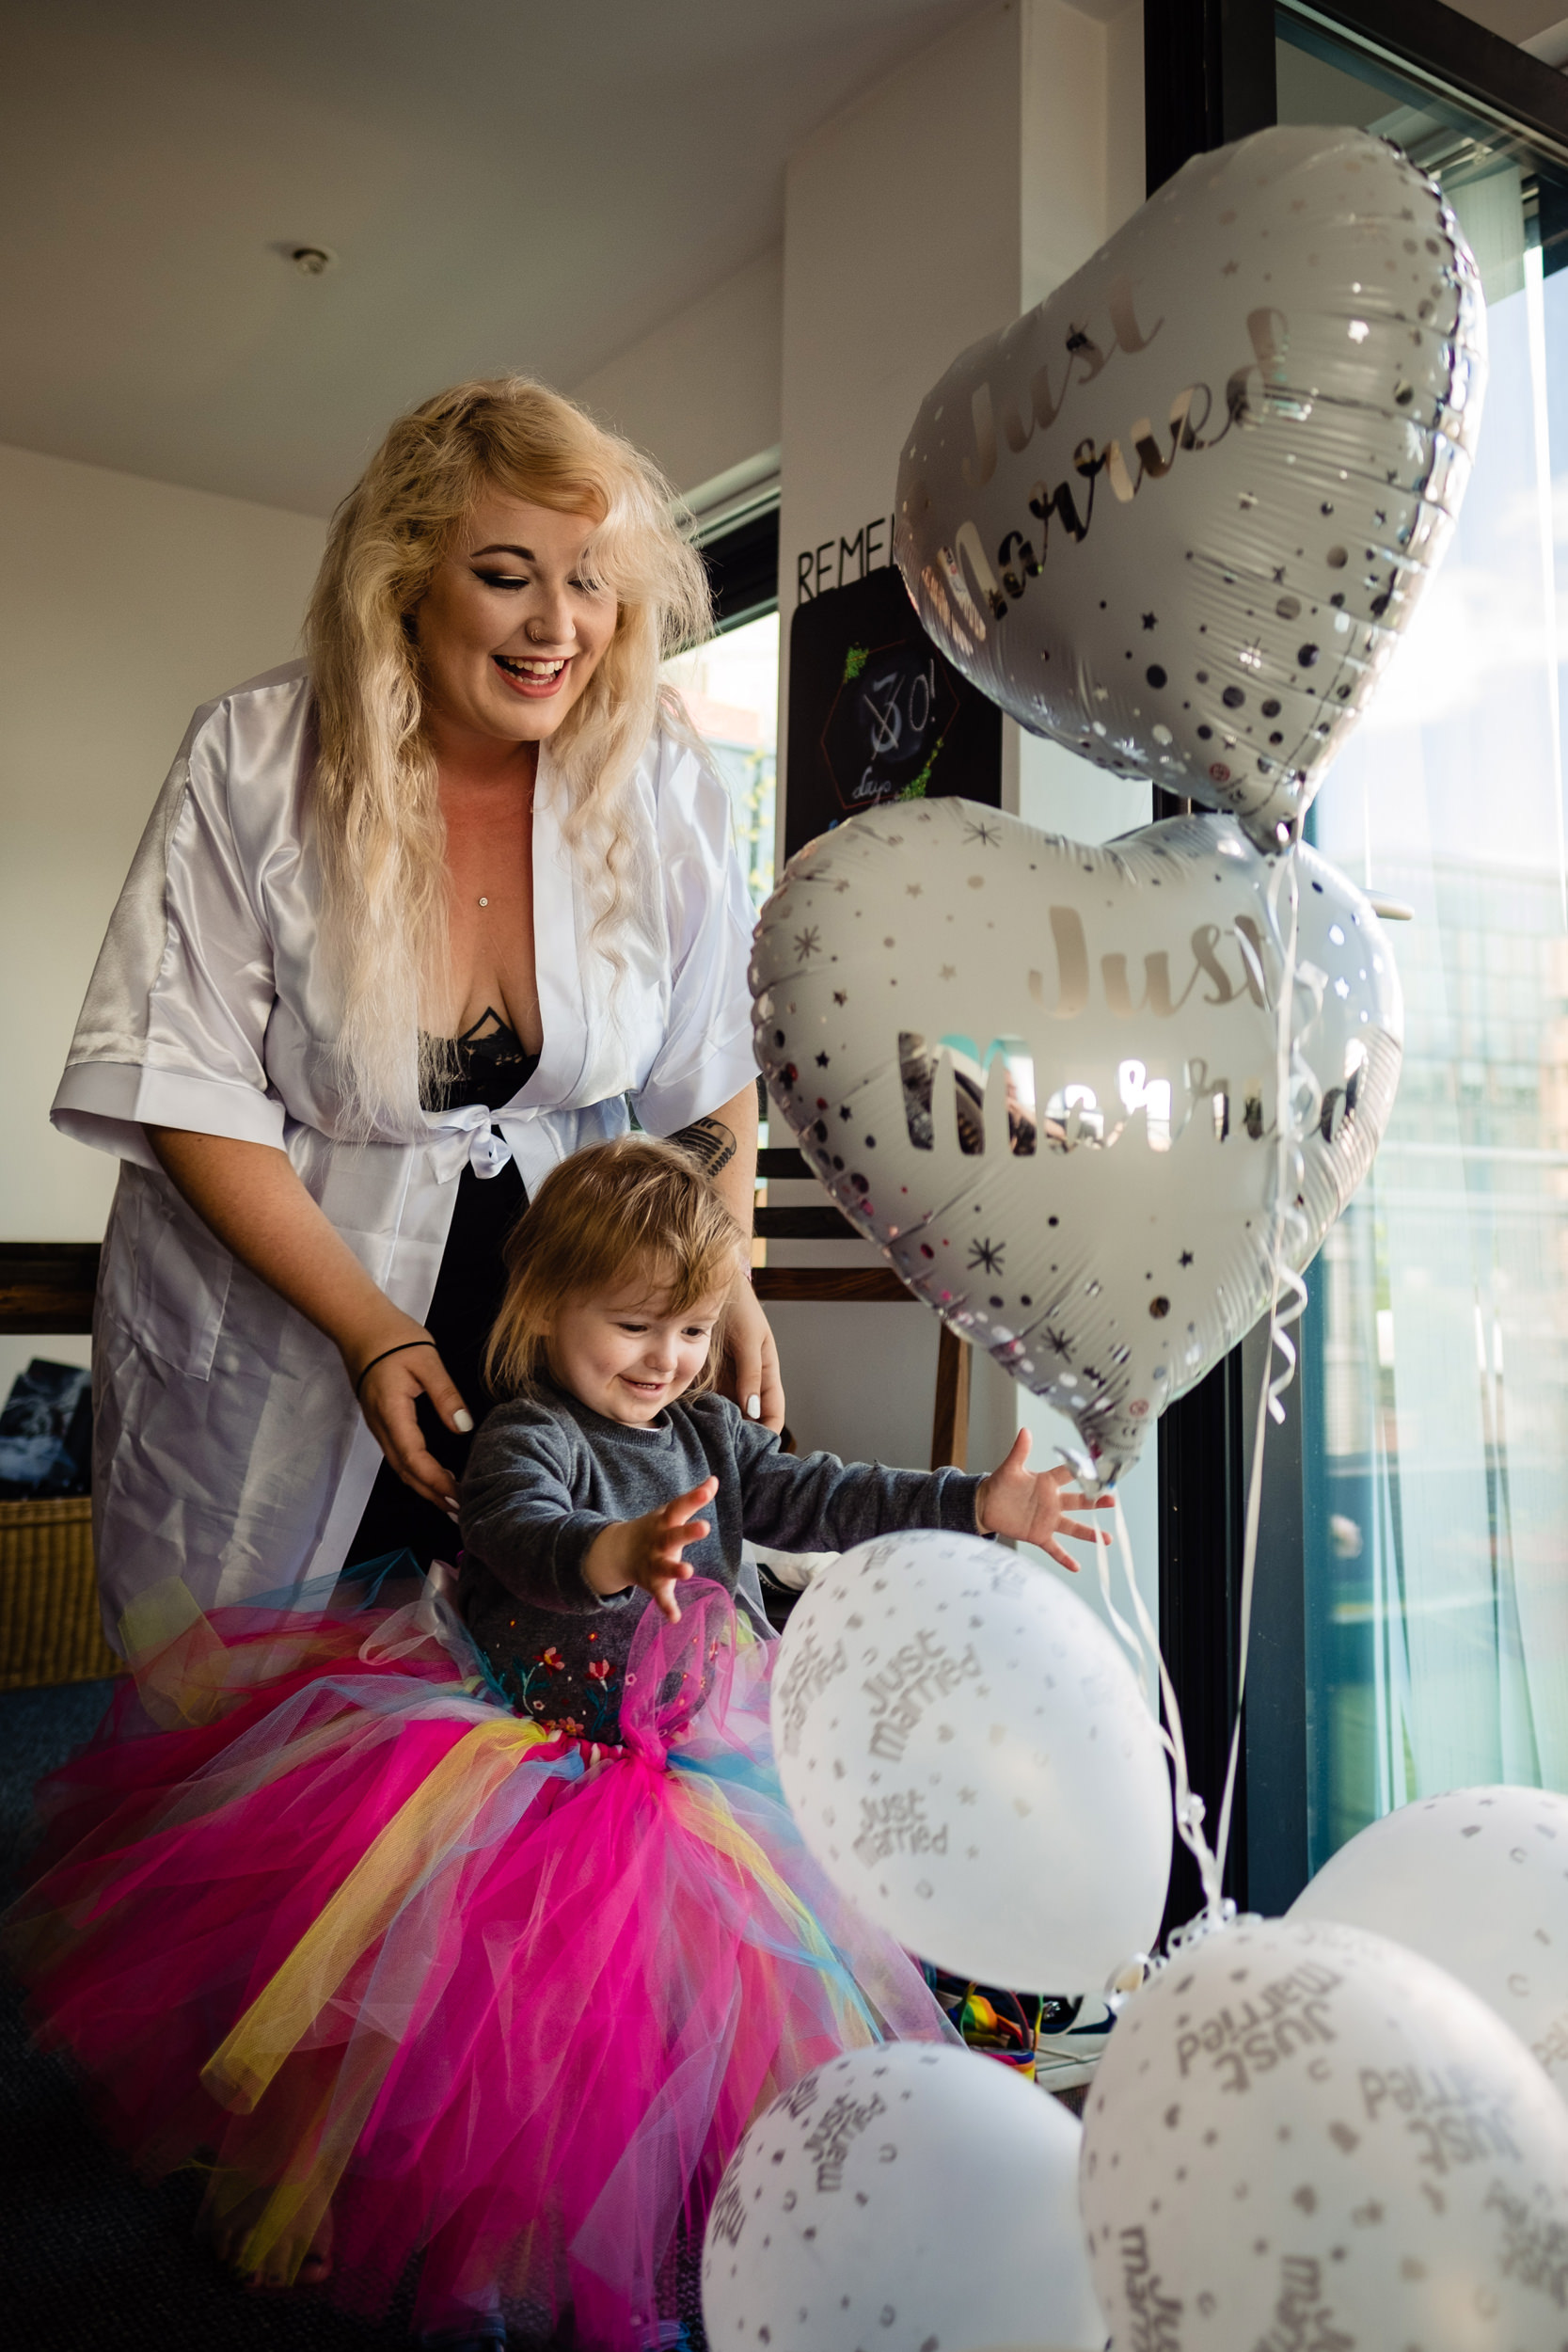 child in colourful tutu playing with wedding balloons. plough inn, hathersage wedding photography by emma and rich.